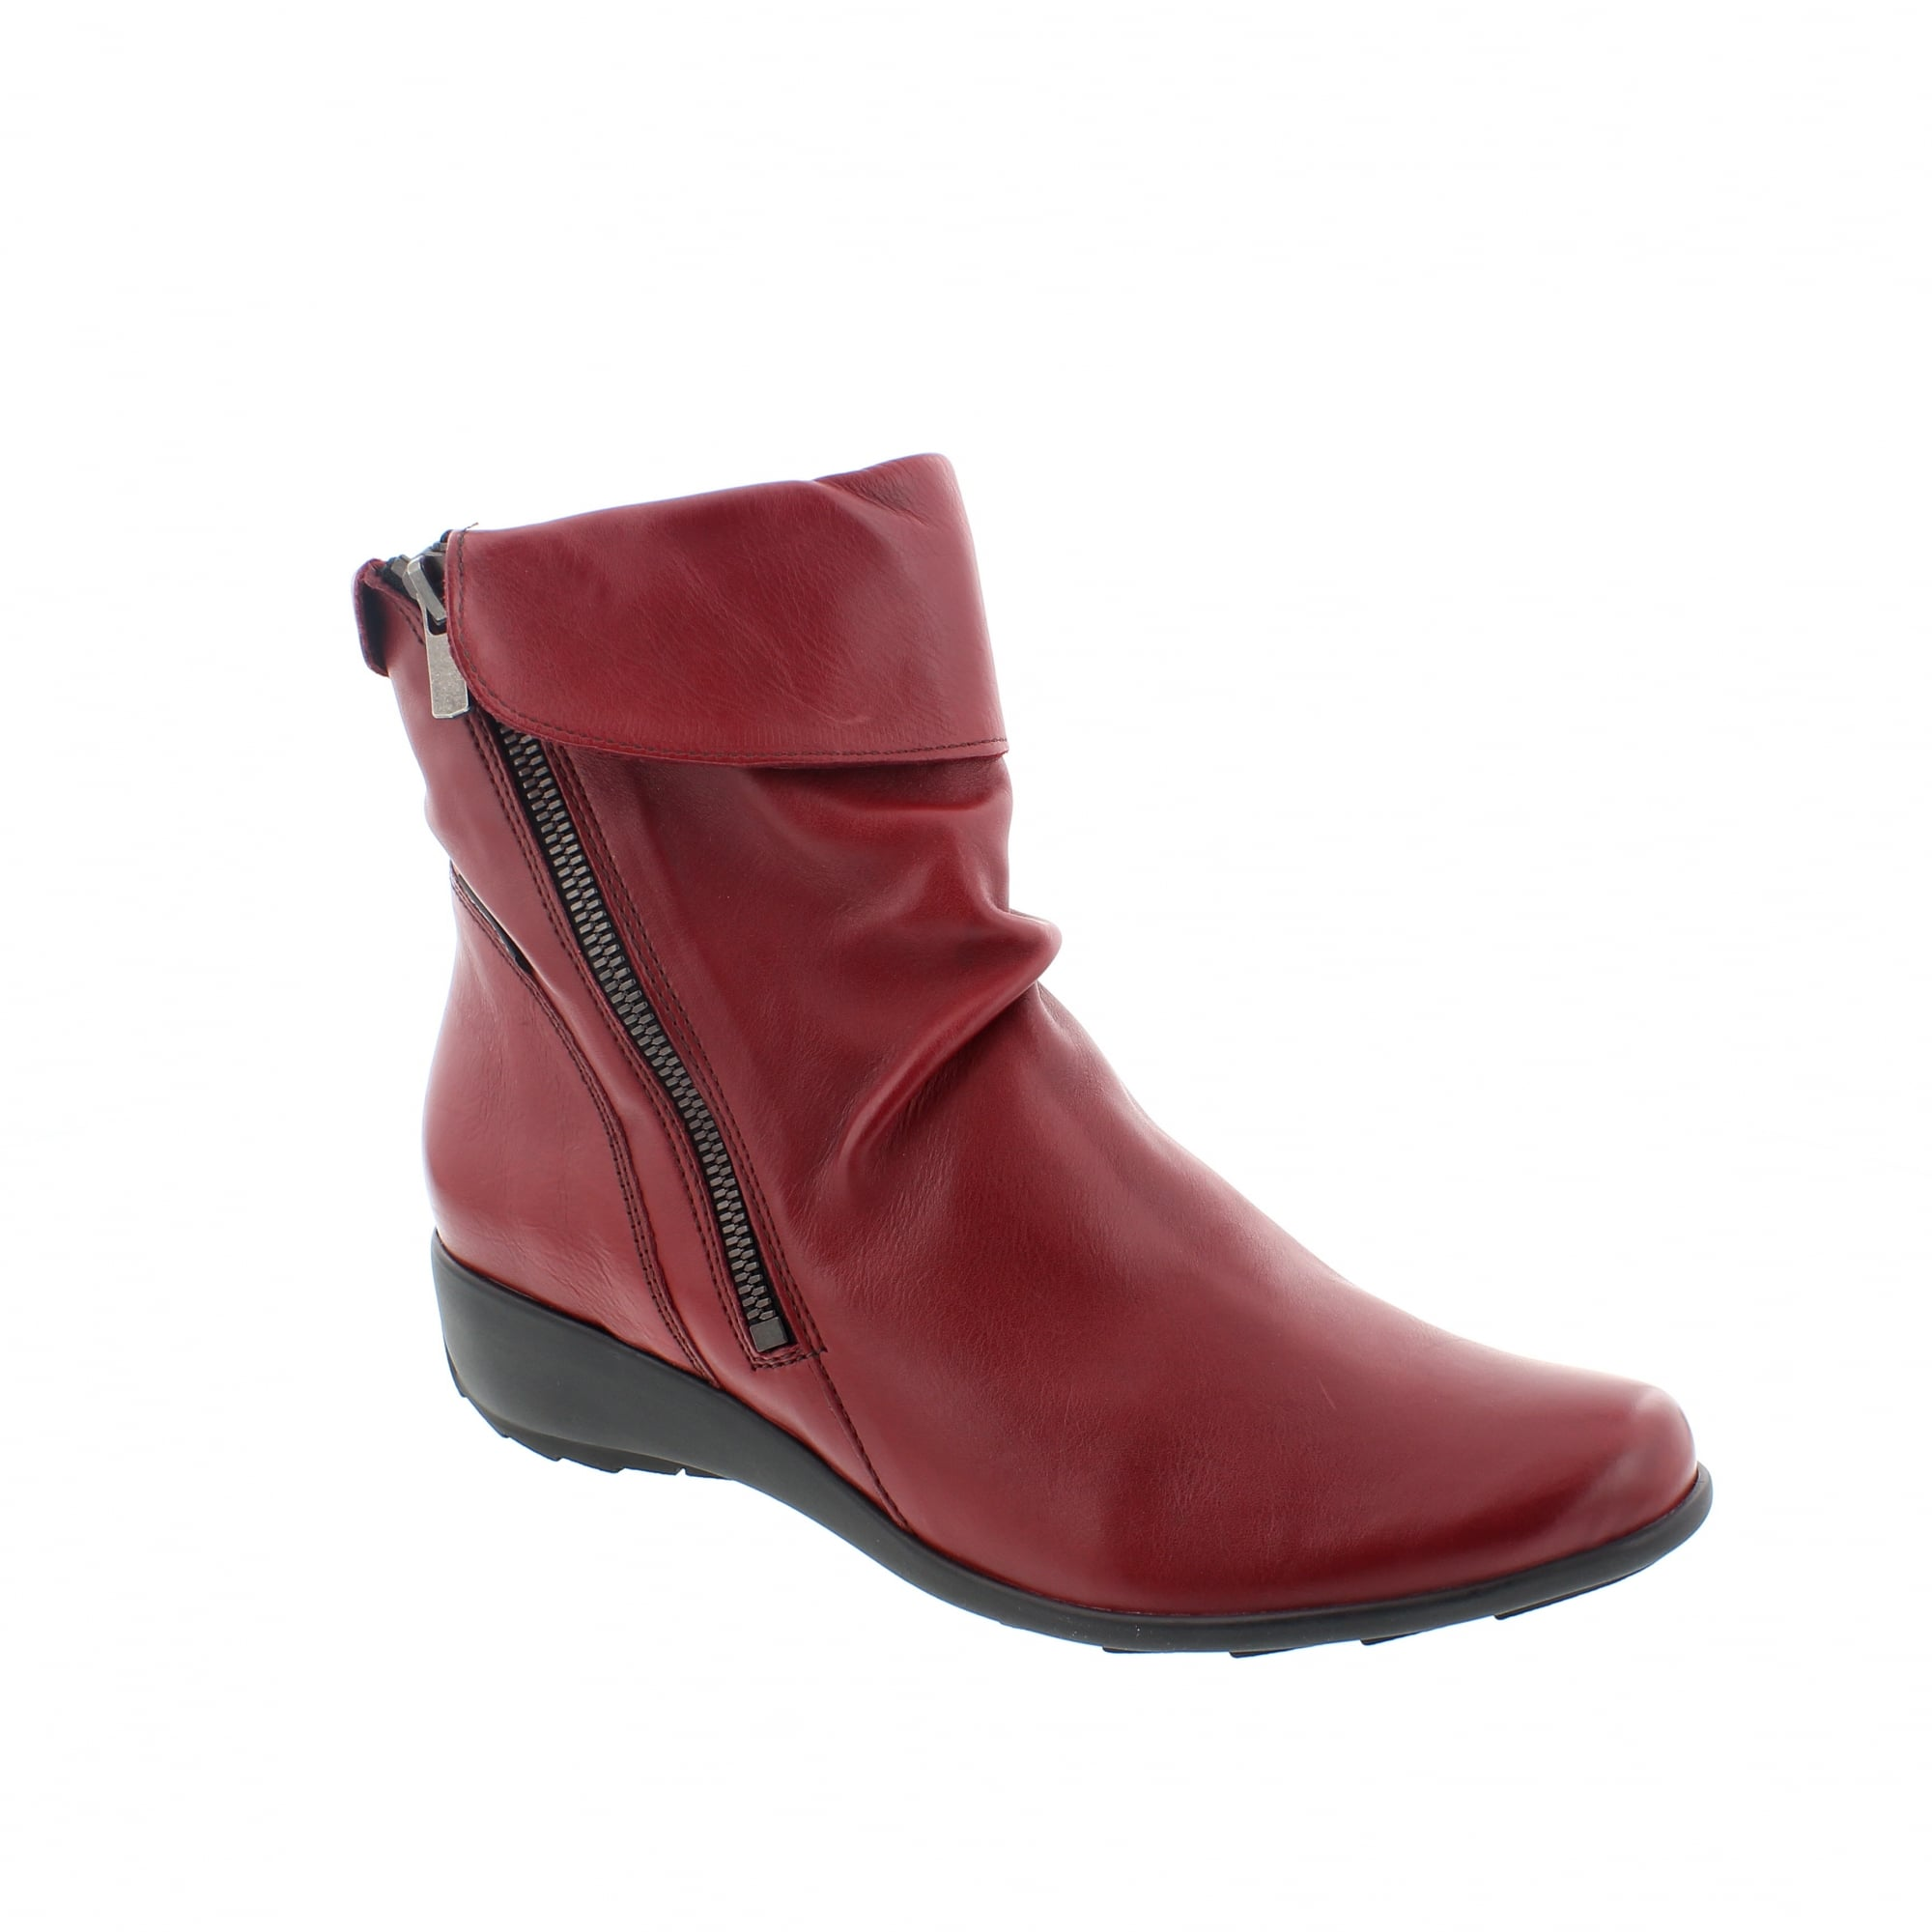 Mephisto Seddy 7988 Womens Ankle Boots 321f6cd1be